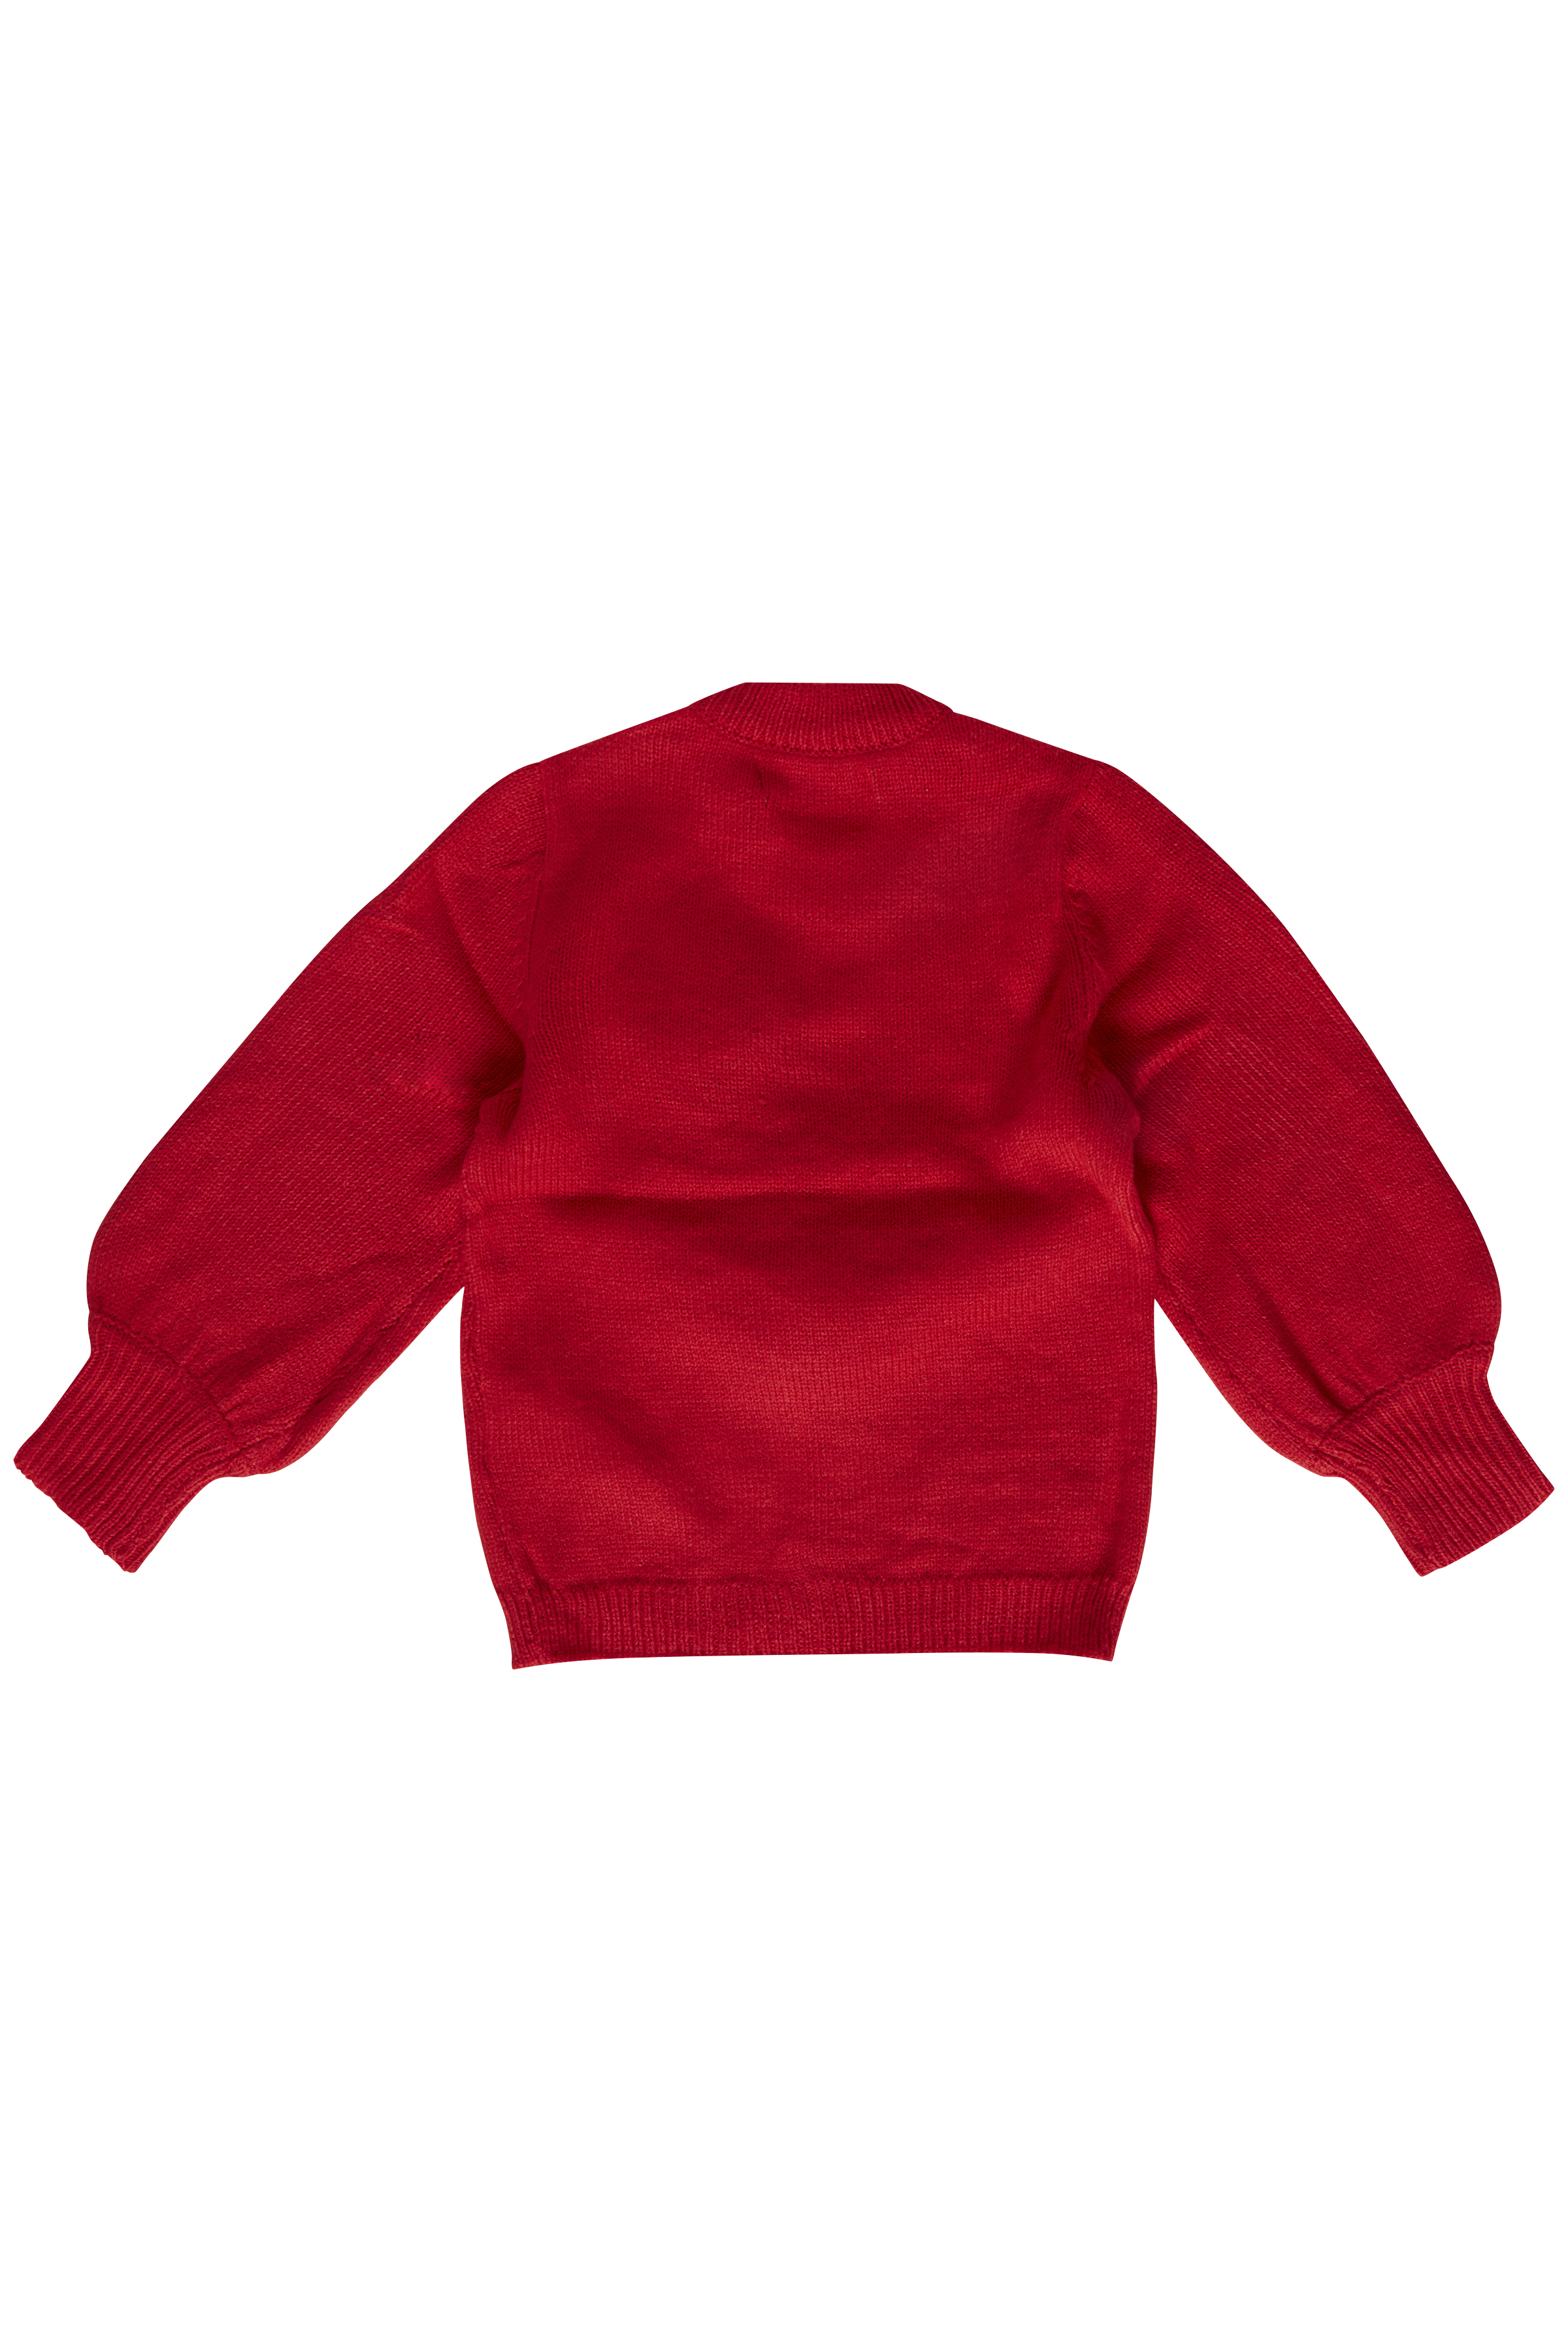 Chinese Red combi 2 Strickpullover von b.young – Kaufen Sie Chinese Red combi 2 Strickpullover aus Größe 92-134/140 hier